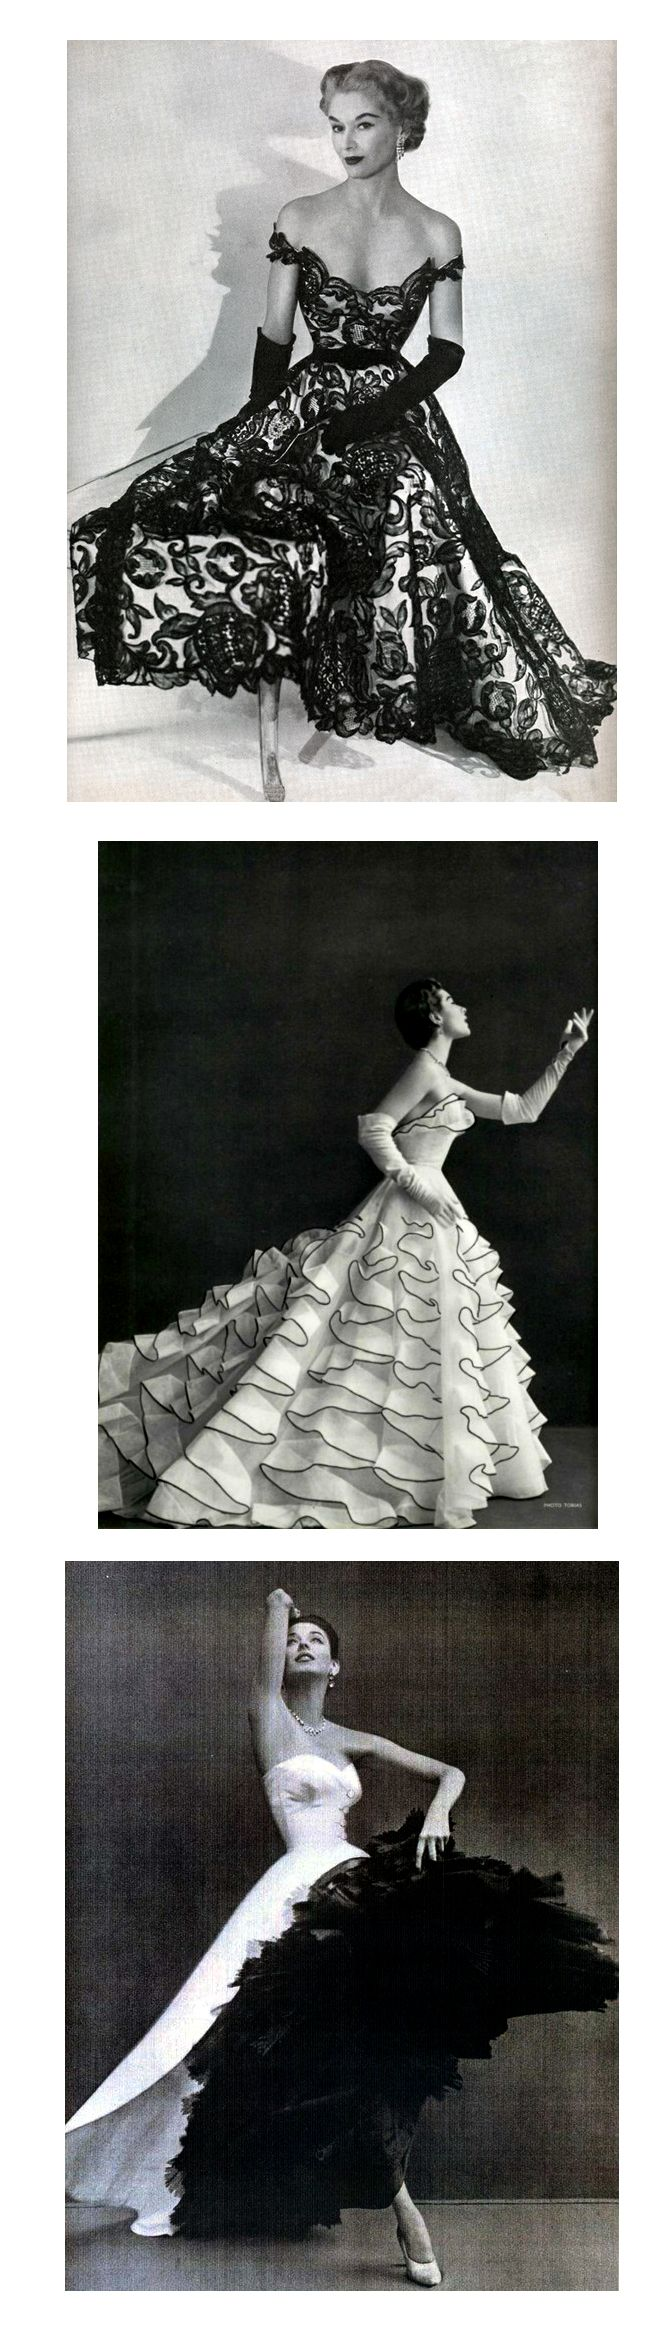 1) 1951 Hattie Carnegie Fashions. Photo by Horst P. Horst. Model: Lisa Fonssagrives-Penn.     2) L'Officiel #371, 1953. Photographer: Tobias Jacques Heim, Spring 1953    3) Evening ensemble: Balenciaga, 1951, cover of Harper's.